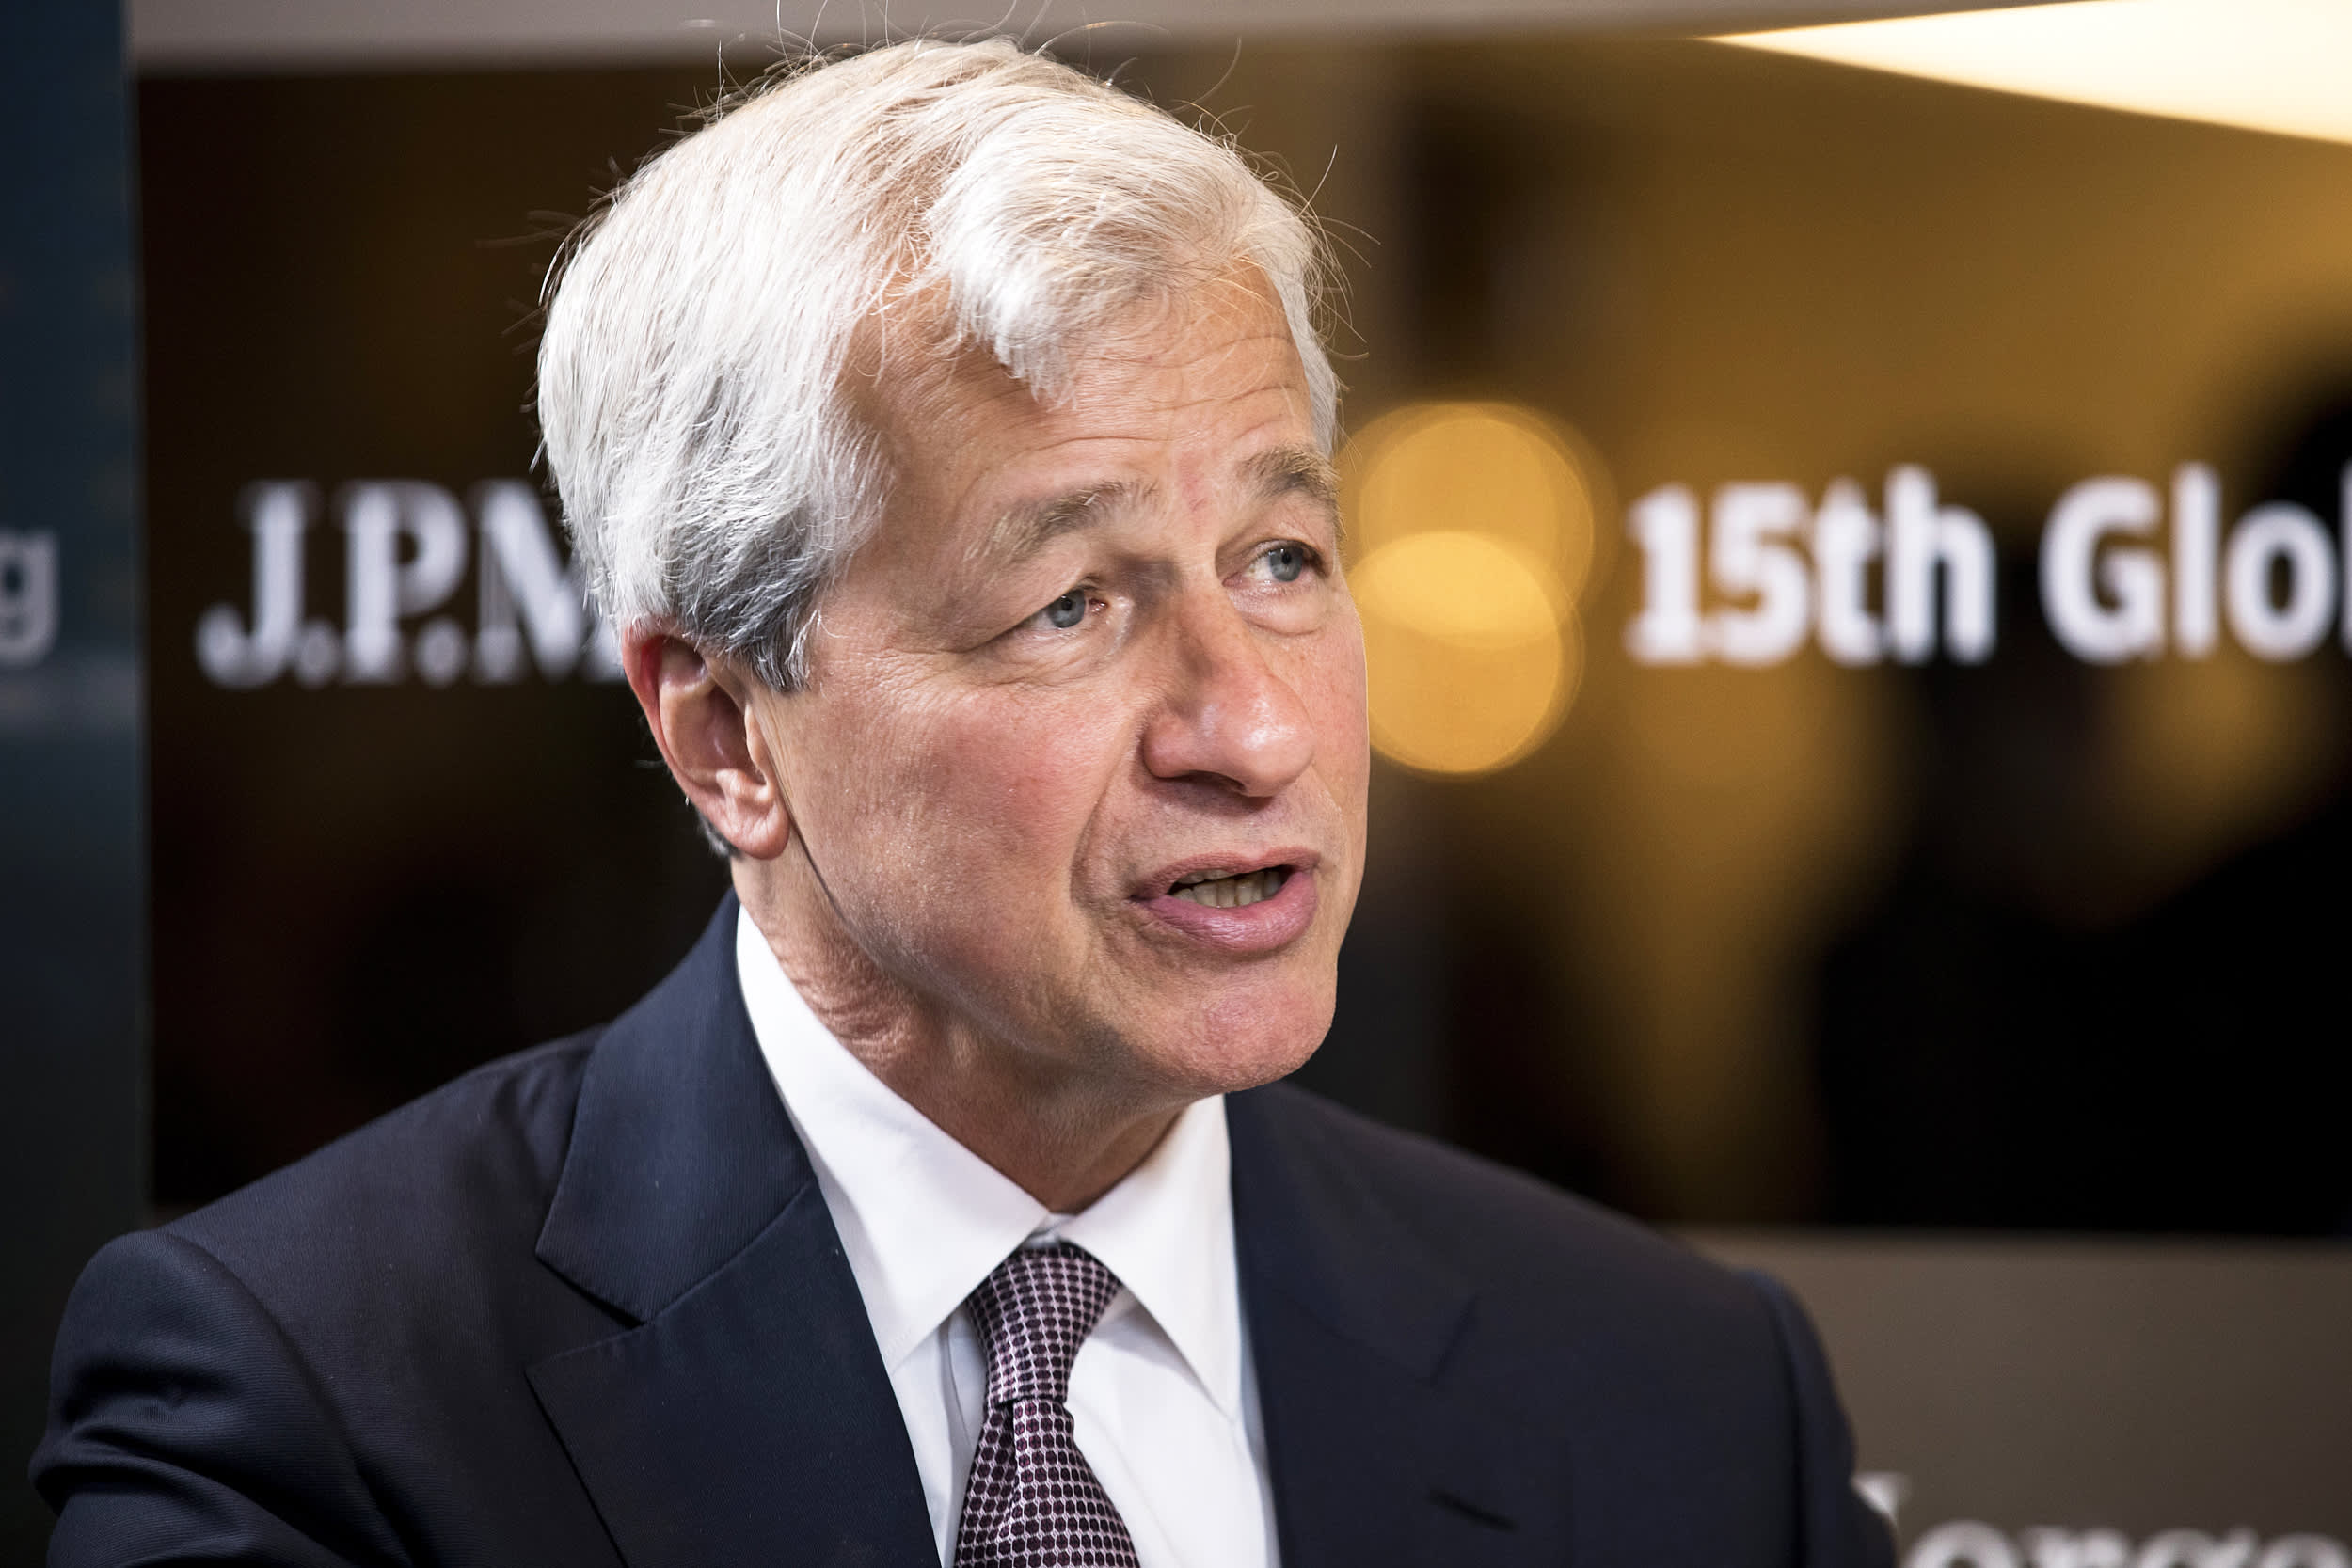 JPMorgan Chase announces latest efforts in its $30 billion commitment to address racial inequality